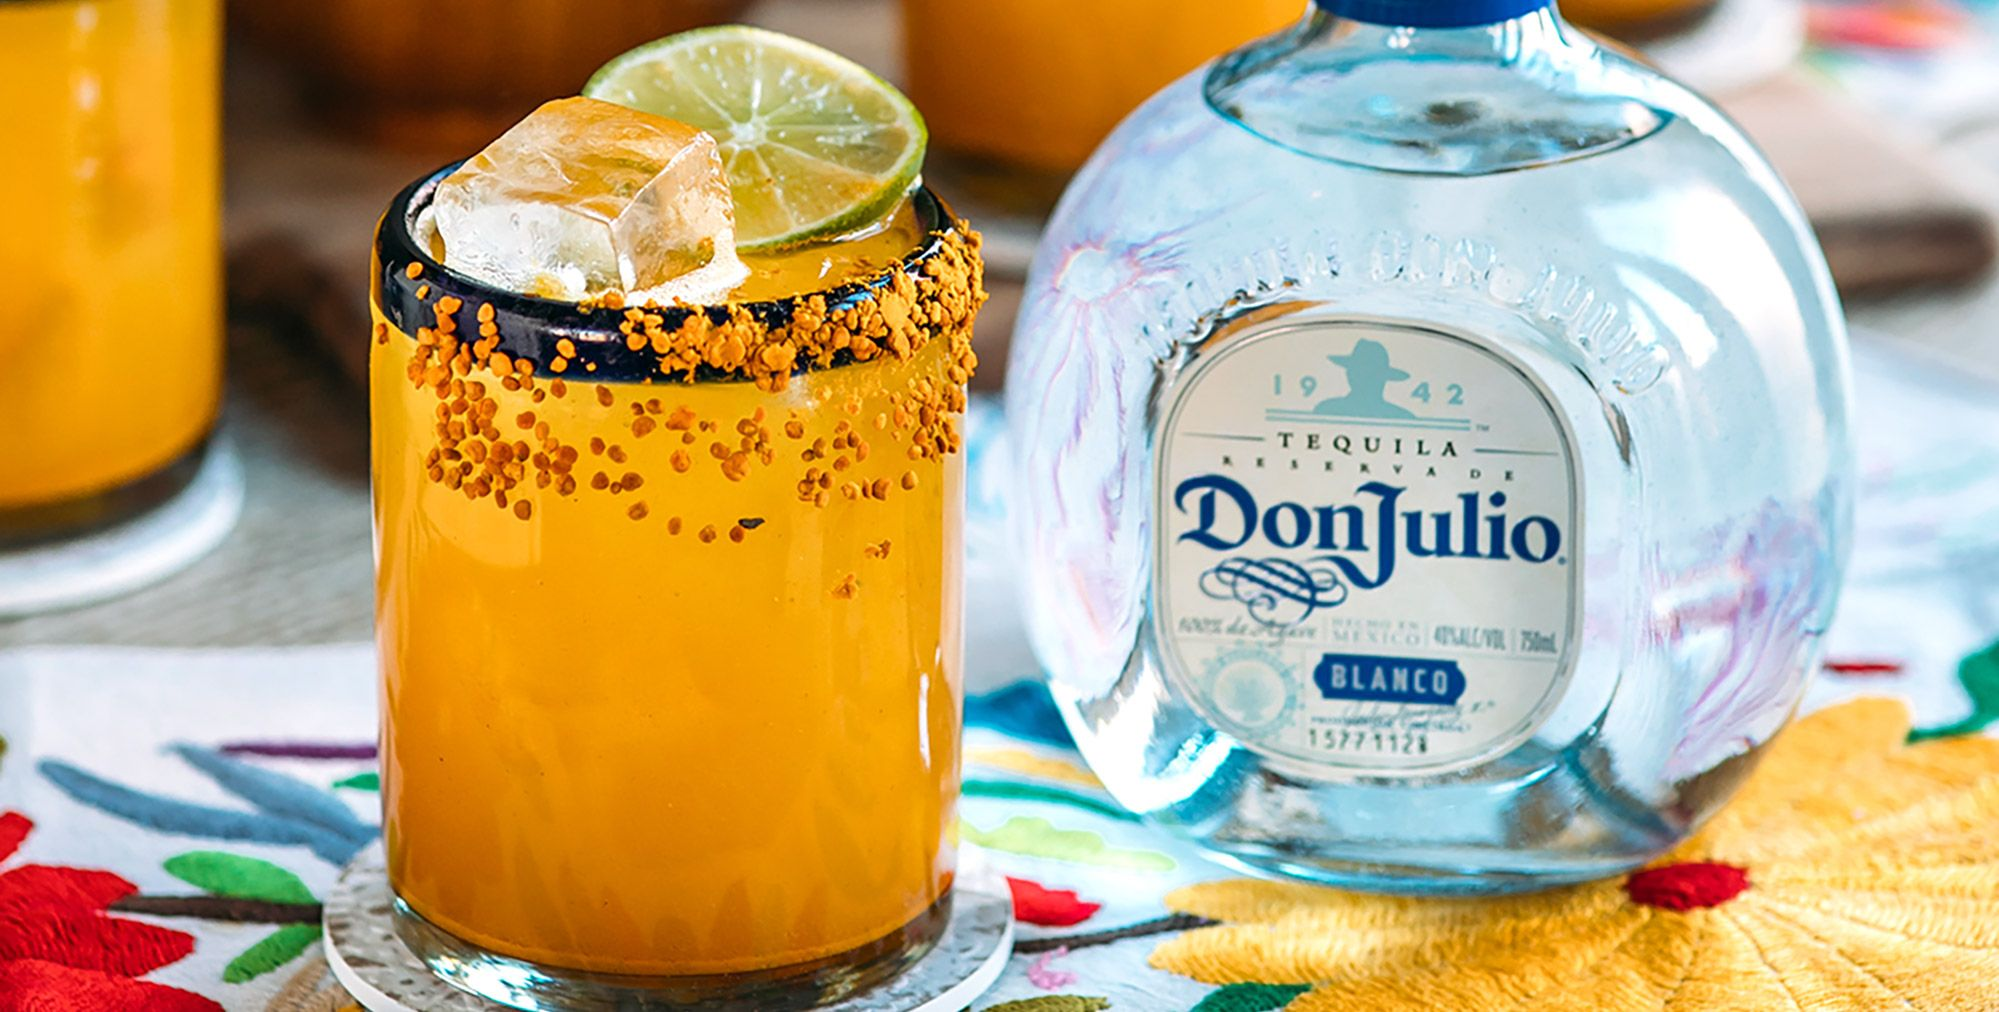 The Ministry of Economy published, in the Official Gazette of the Federation (DOF), a project on regulations related to tequila production.